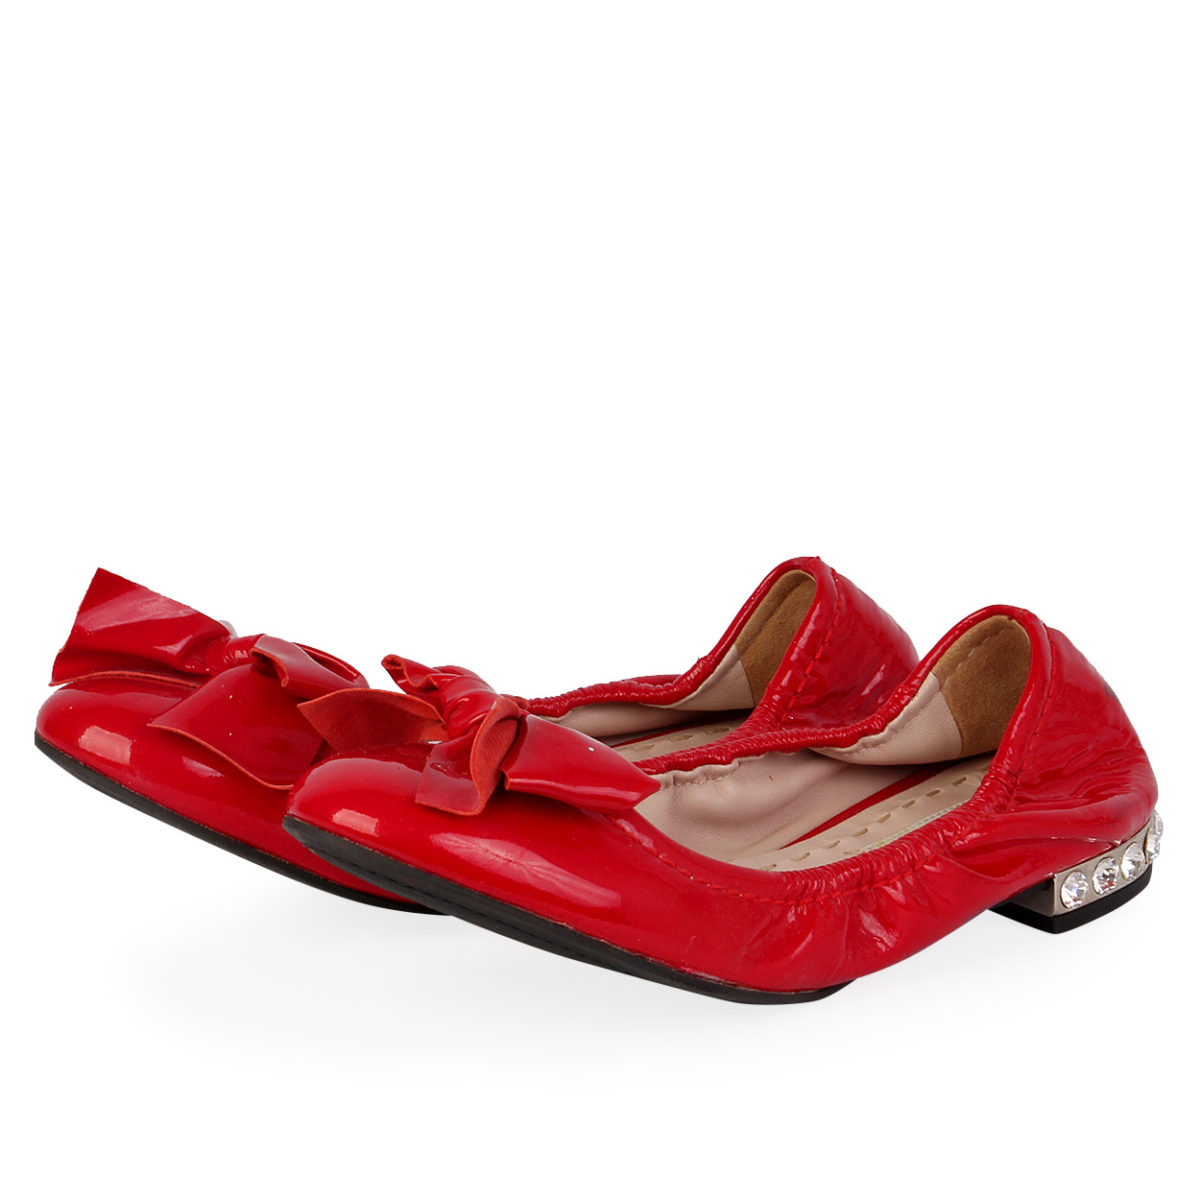 6d455b00a7b40 MIU MIU Patent Leather Bow Crystals Ballerinas Red - S: 36.5 (3.5 ...